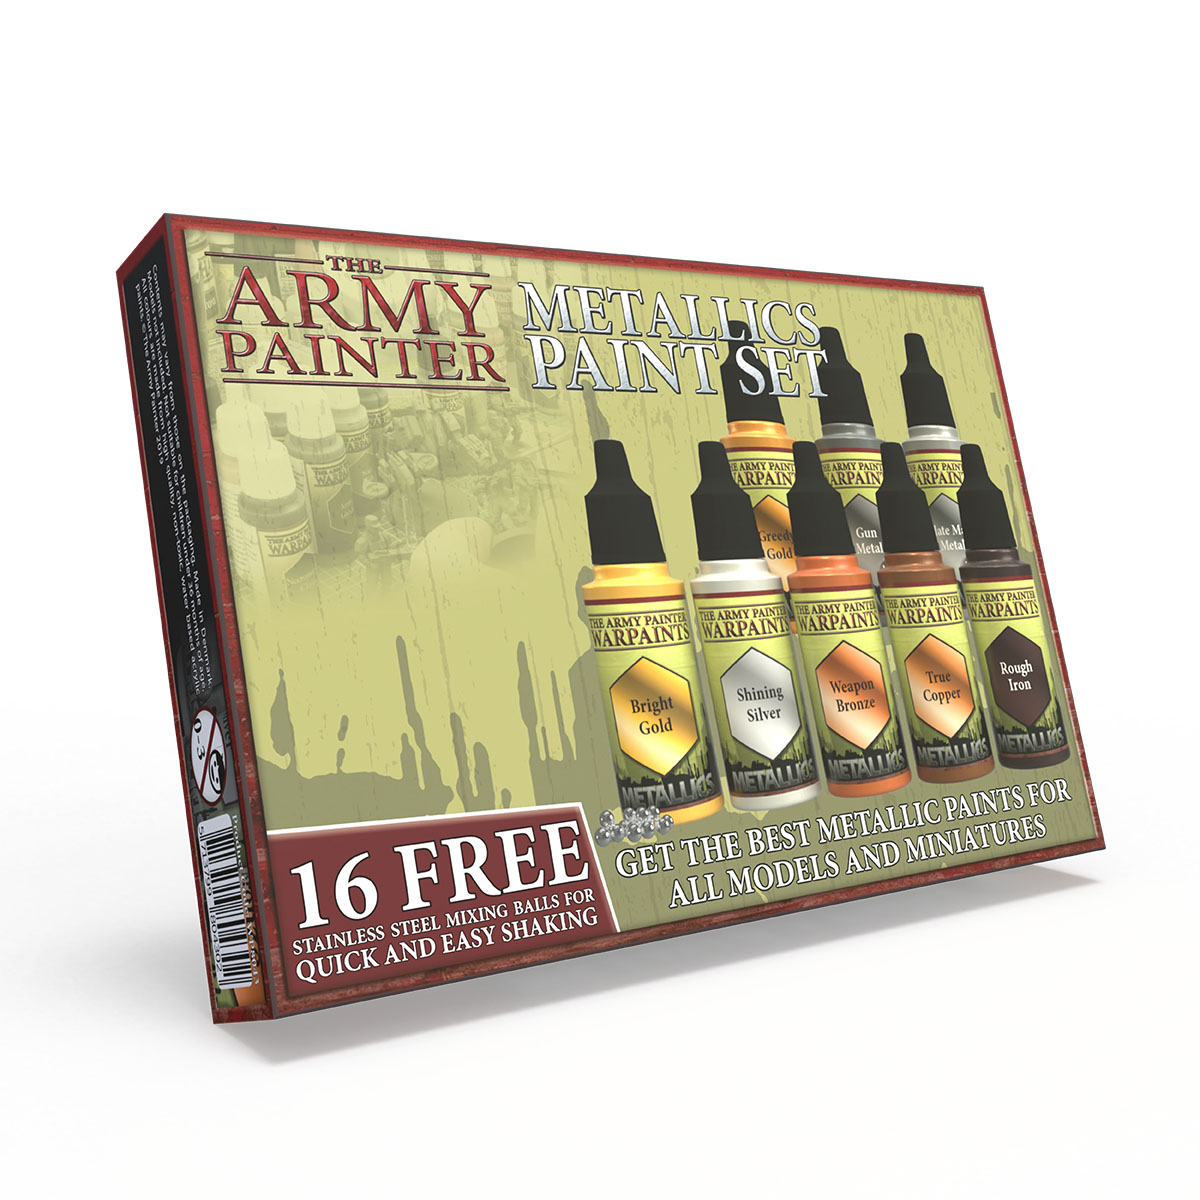 Army Painter Warpaints Metallic Paint Set